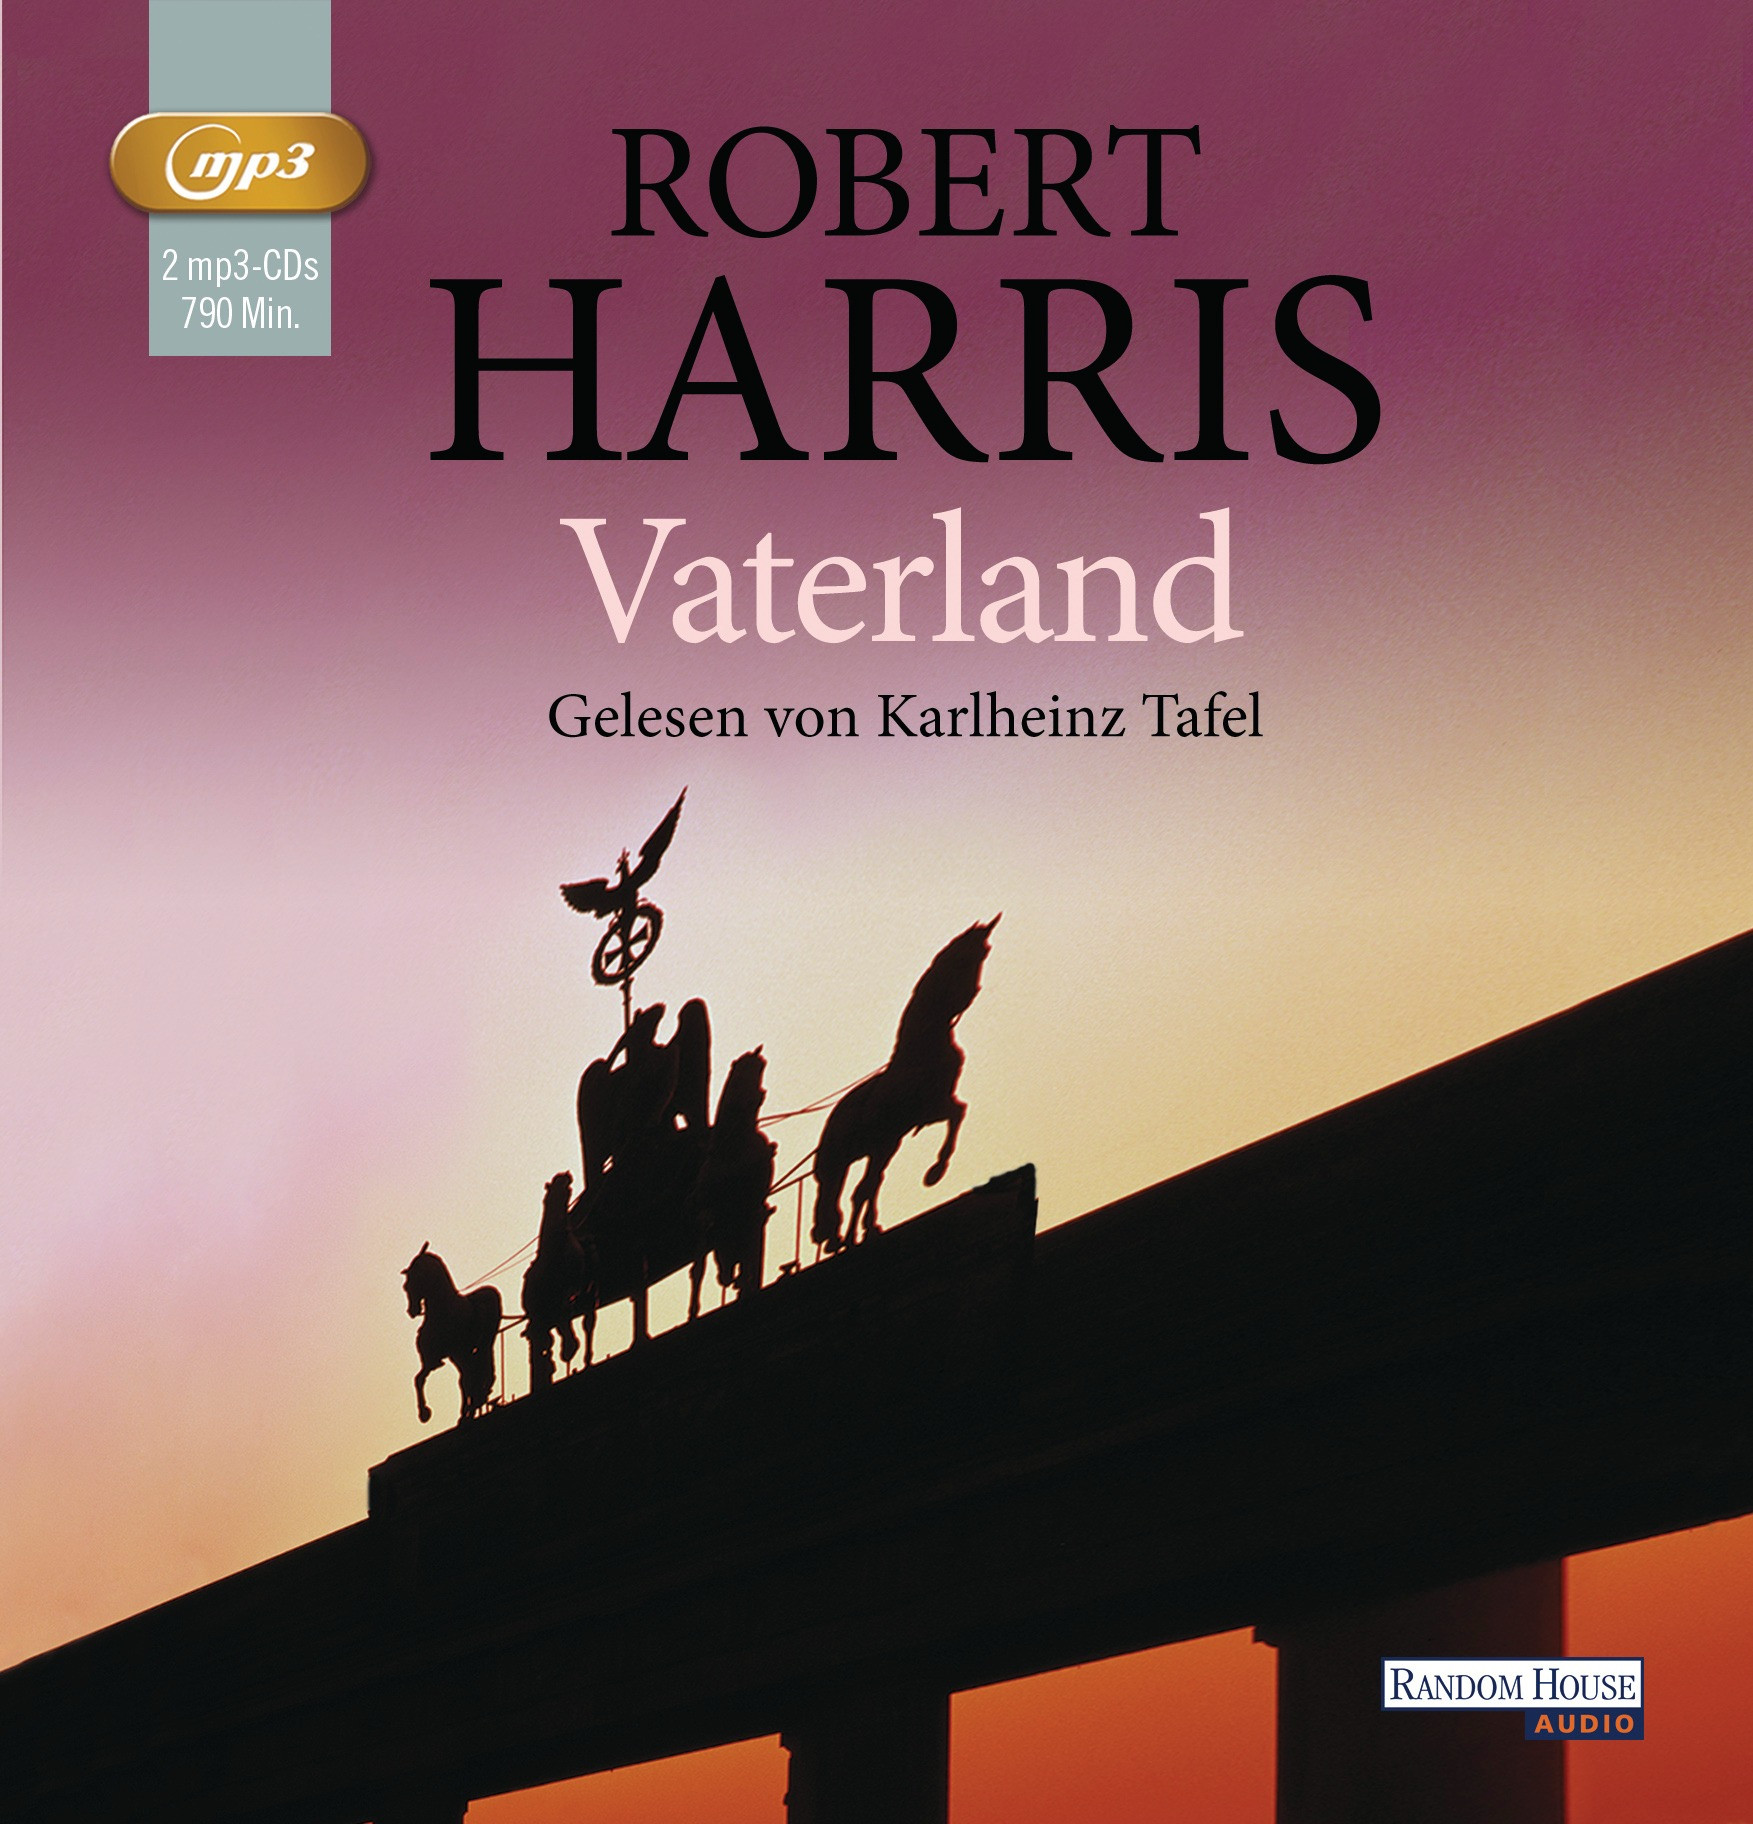 Robert Harris - Vaterland (mp3-CDs)